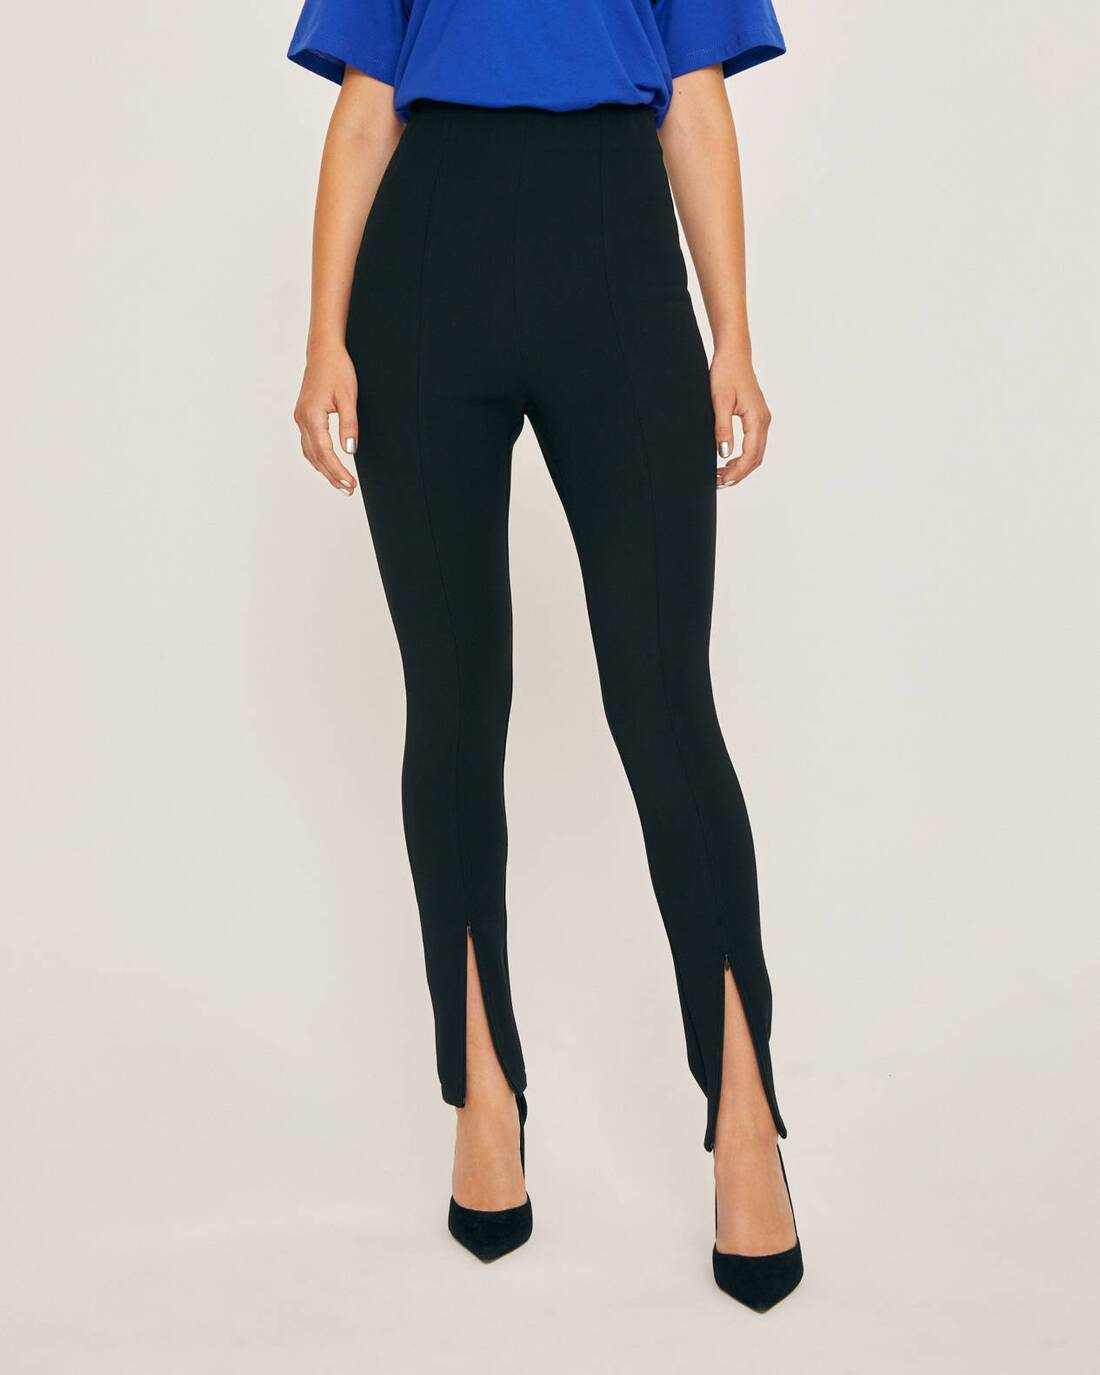 Leggings with contrast stitching